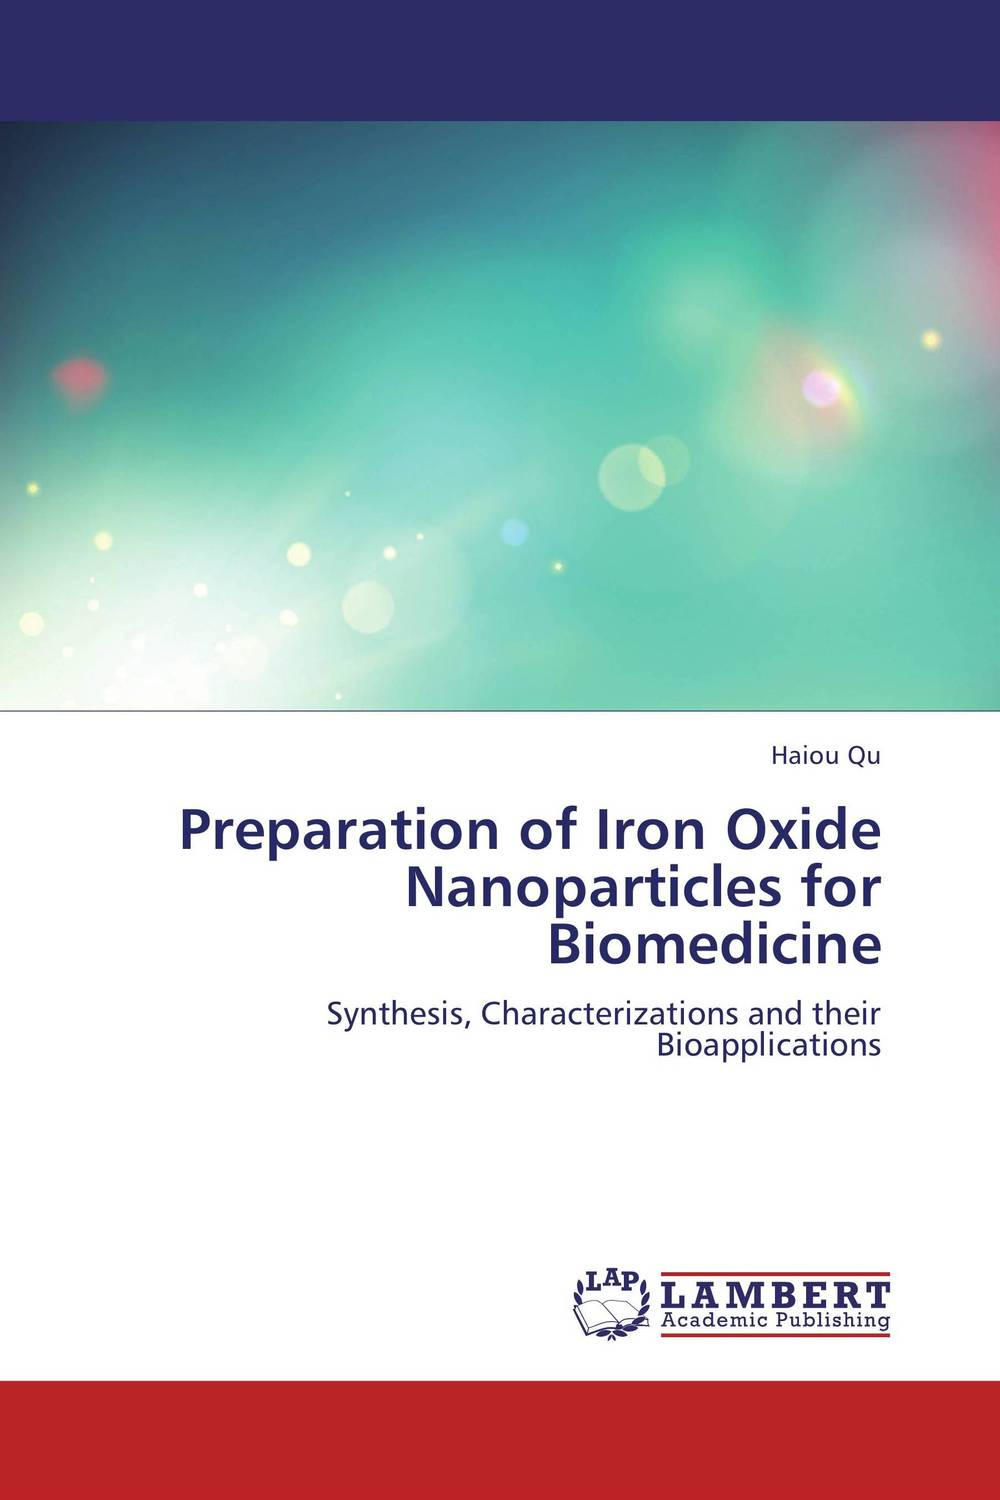 все цены на  Preparation of Iron Oxide Nanoparticles for Biomedicine  в интернете